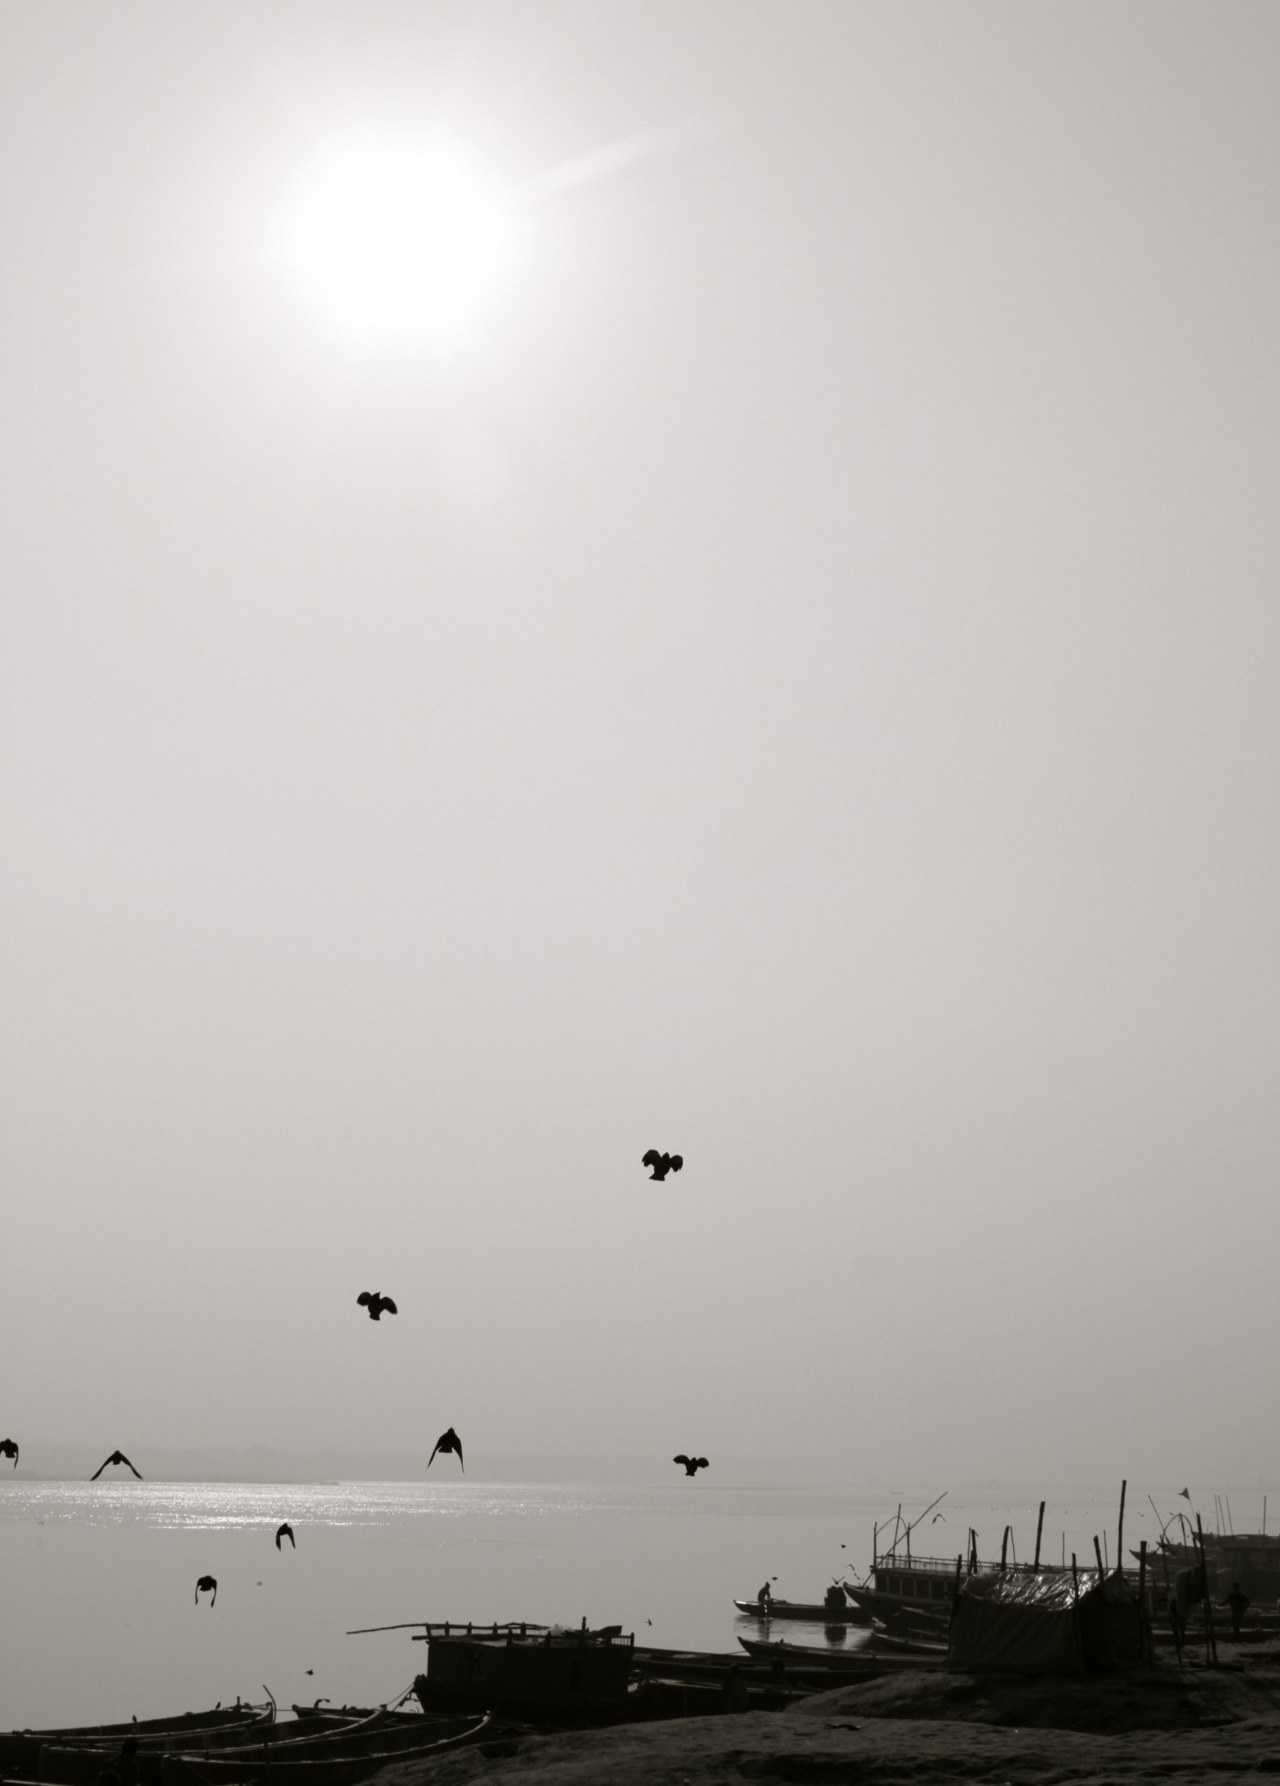 birds taking flight over the ganges